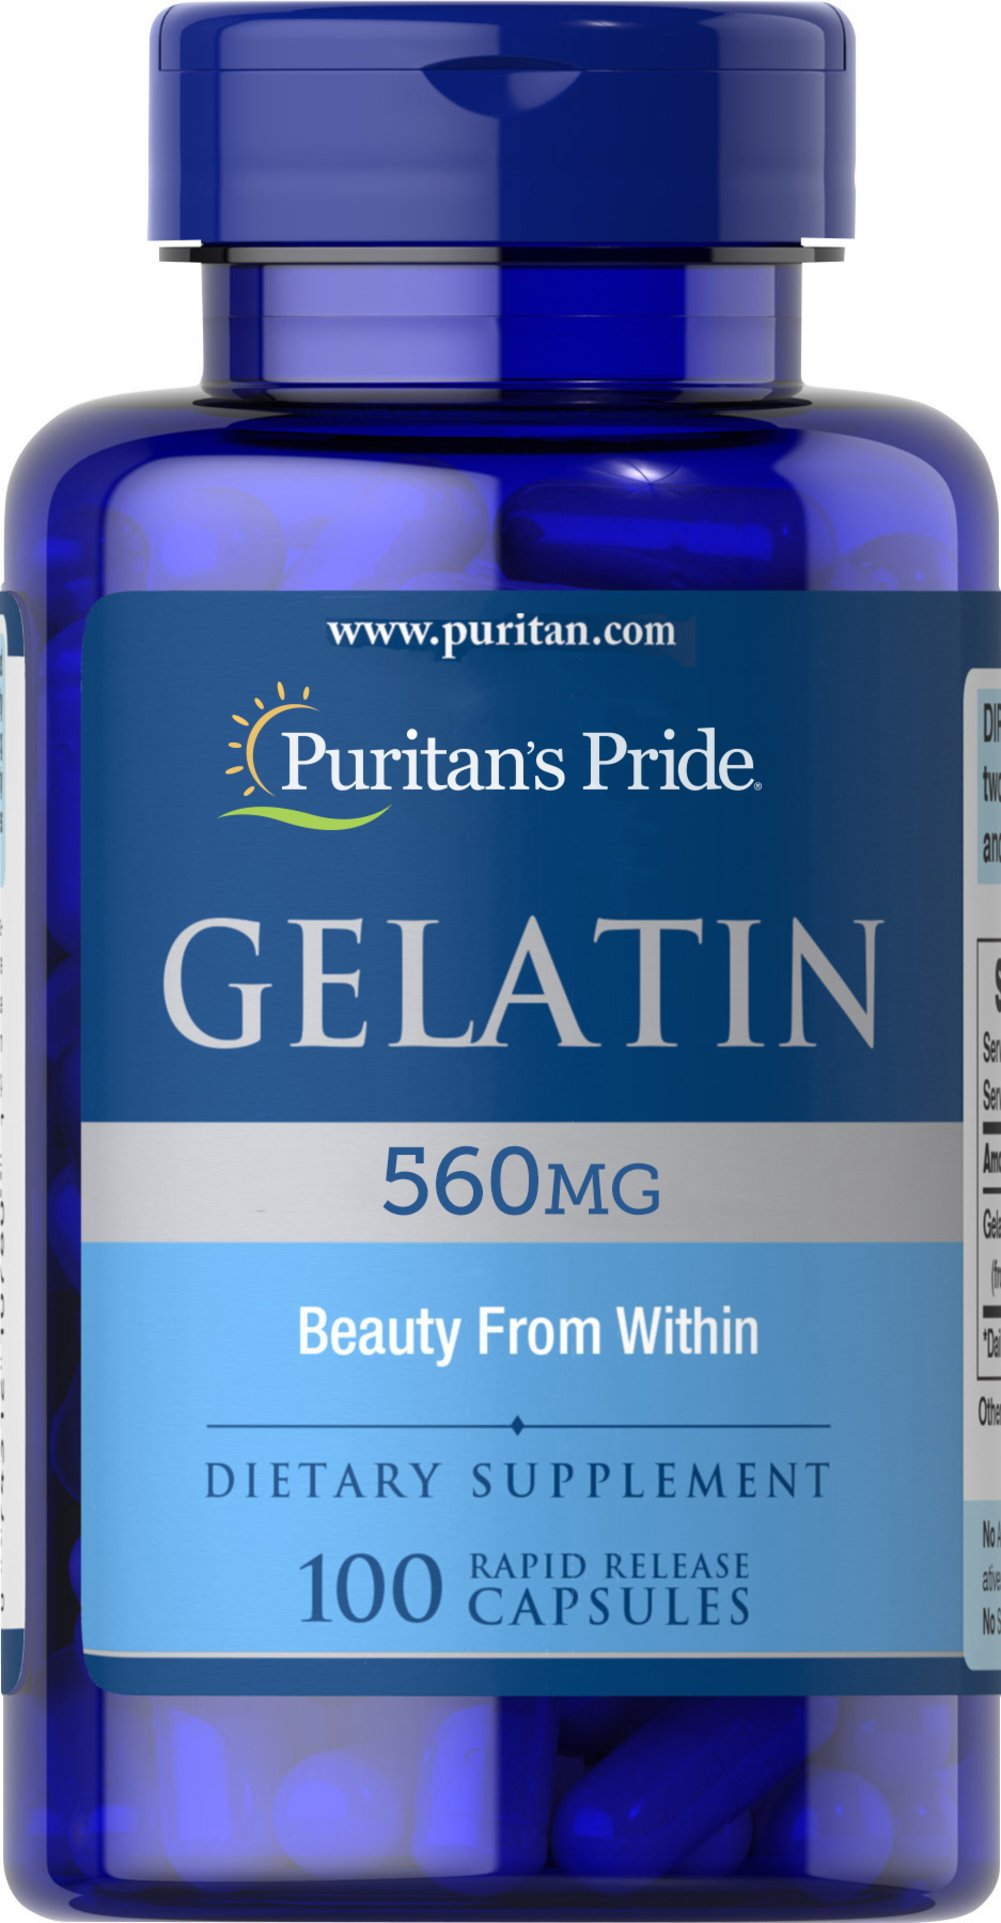 Gelatin 560 mg Thumbnail Alternate Bottle View